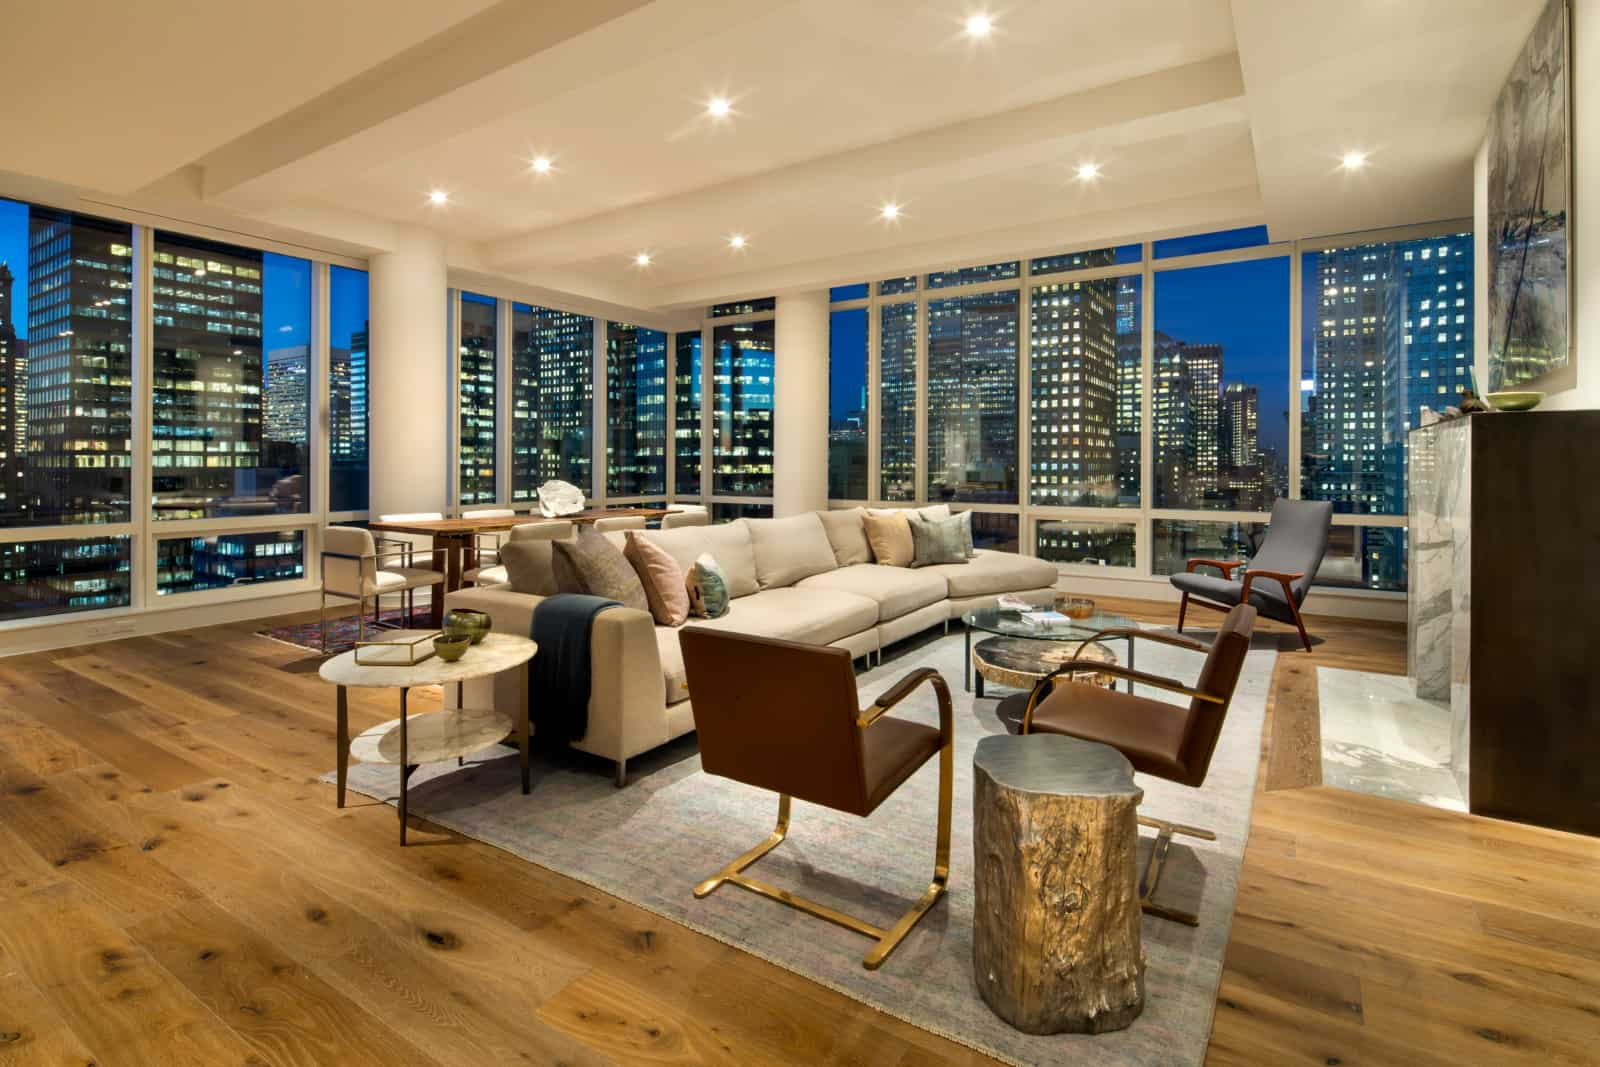 Large open plan apartment with living room area with fireplace, dining table, and windows on two sides with city views.